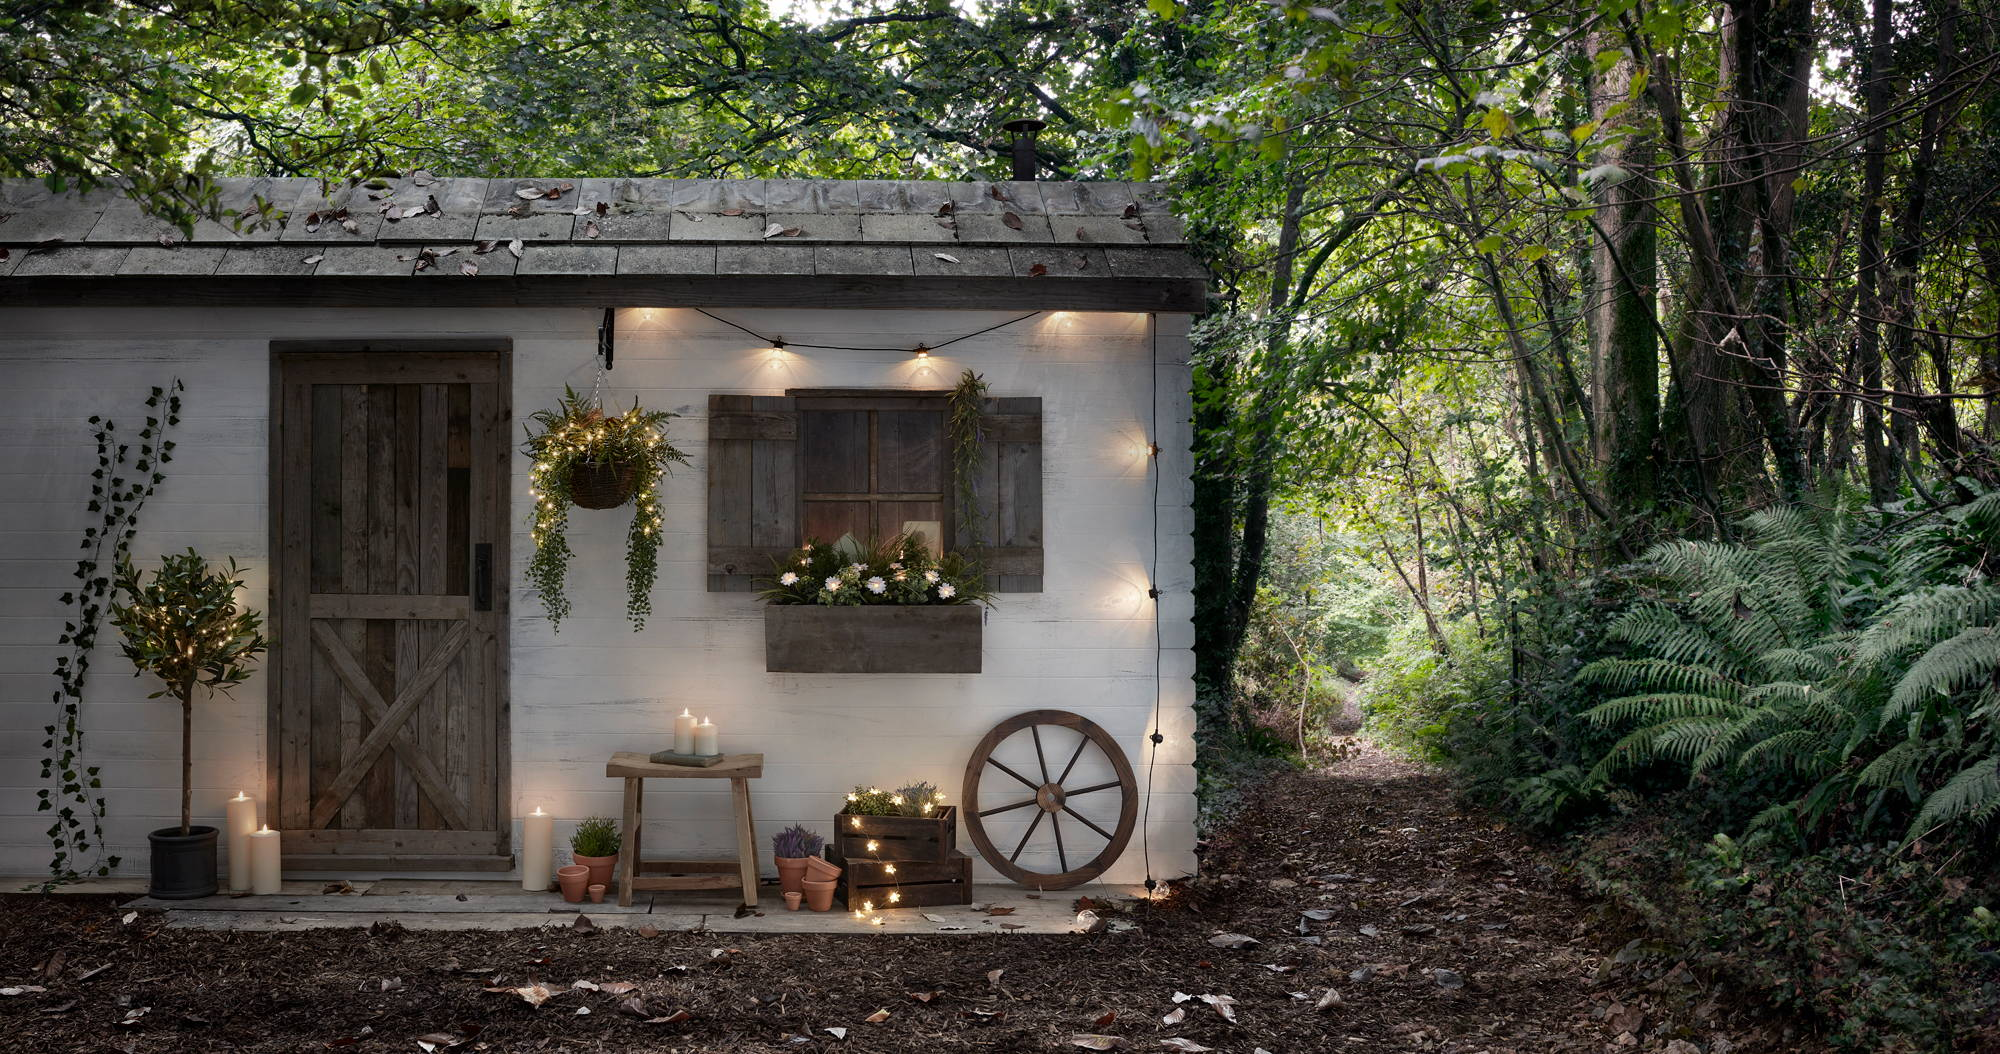 Woodland cabin with festoon lights, LED candles and fairy lights displayed